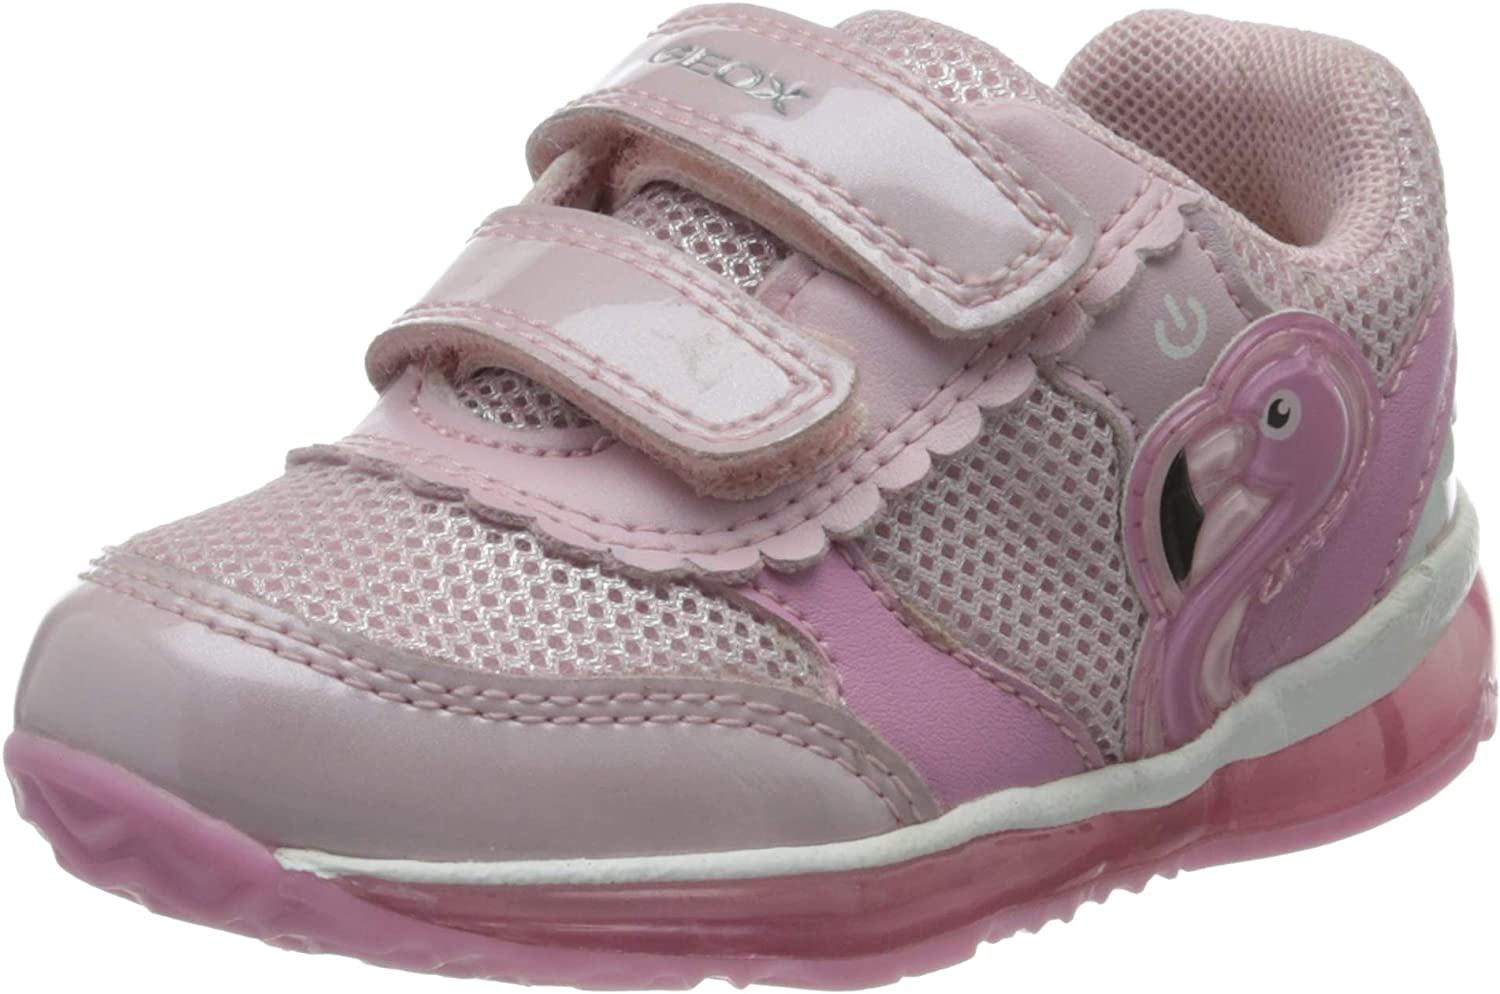 manguera De ninguna manera Campeonato  Amazon.com: Geox - Todo Baby Girl - B0285C0HI14C8004 - Color: Pink - Size:  10 Little Kid: Shoes